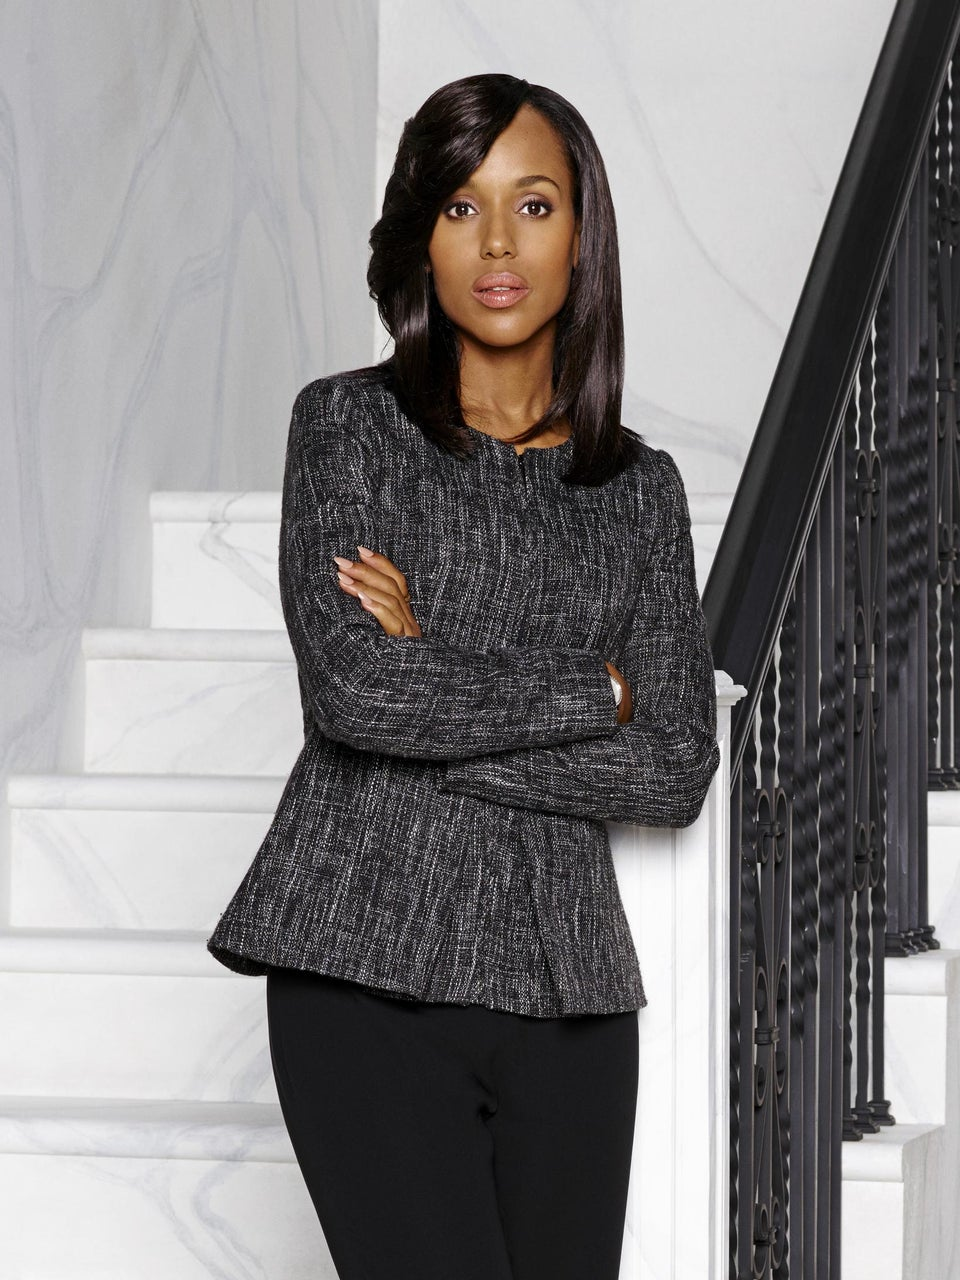 New Trailers for 'Scandal' and 'How to Get Away with Murder' Are Officially Jaw-Dropping!